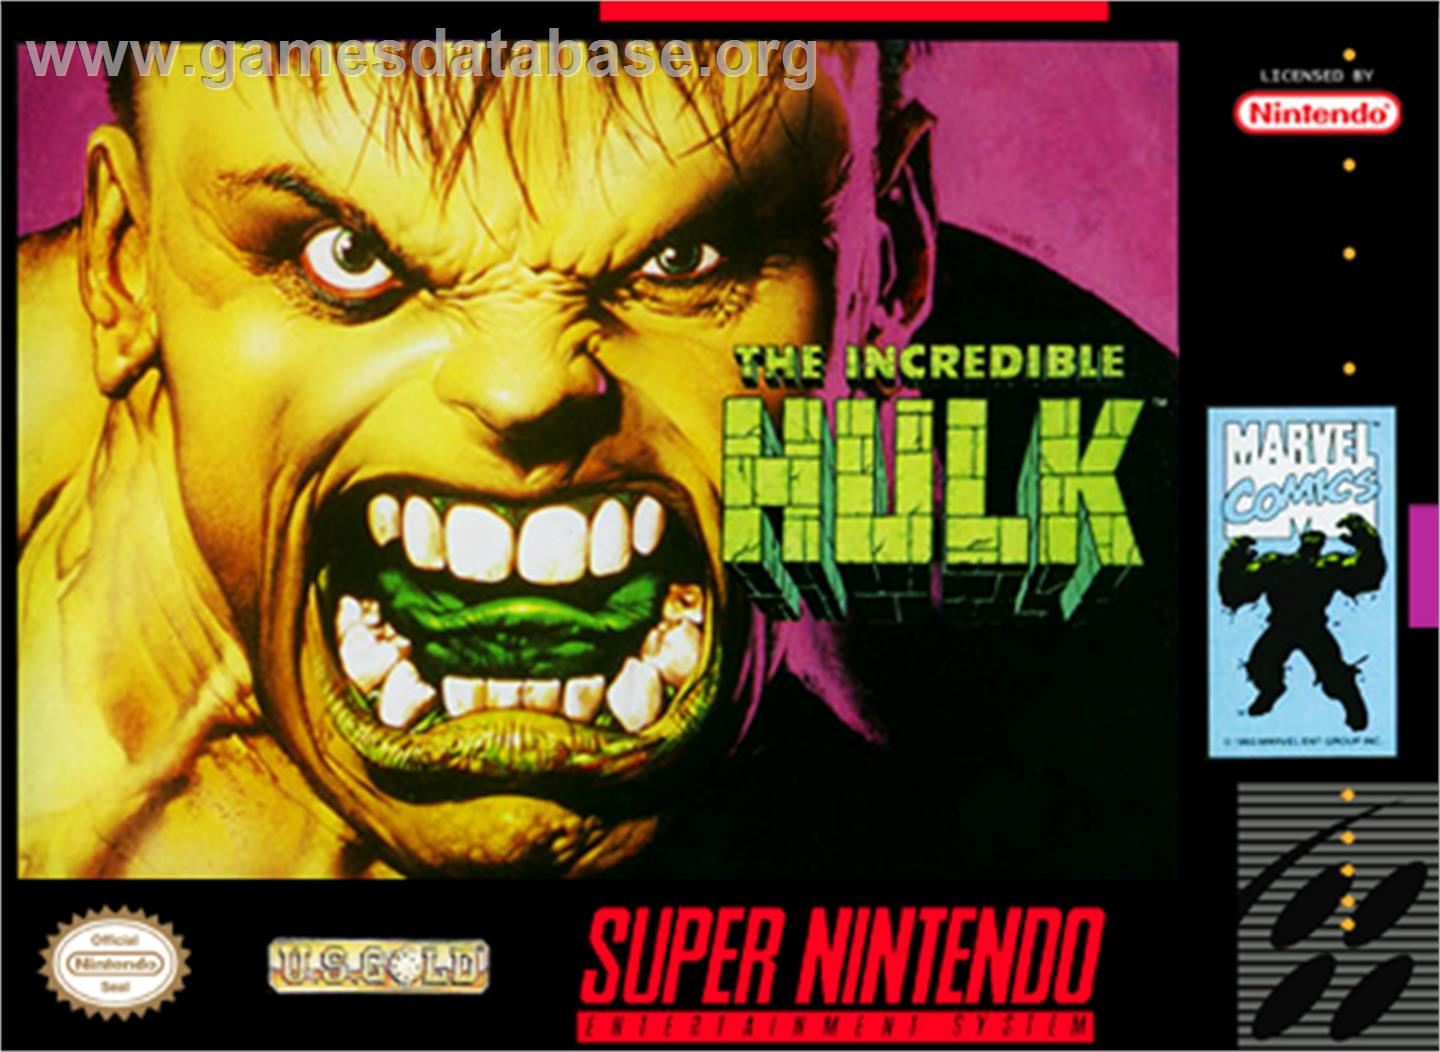 The Incredible Hulk Nintendo Snes Games Database